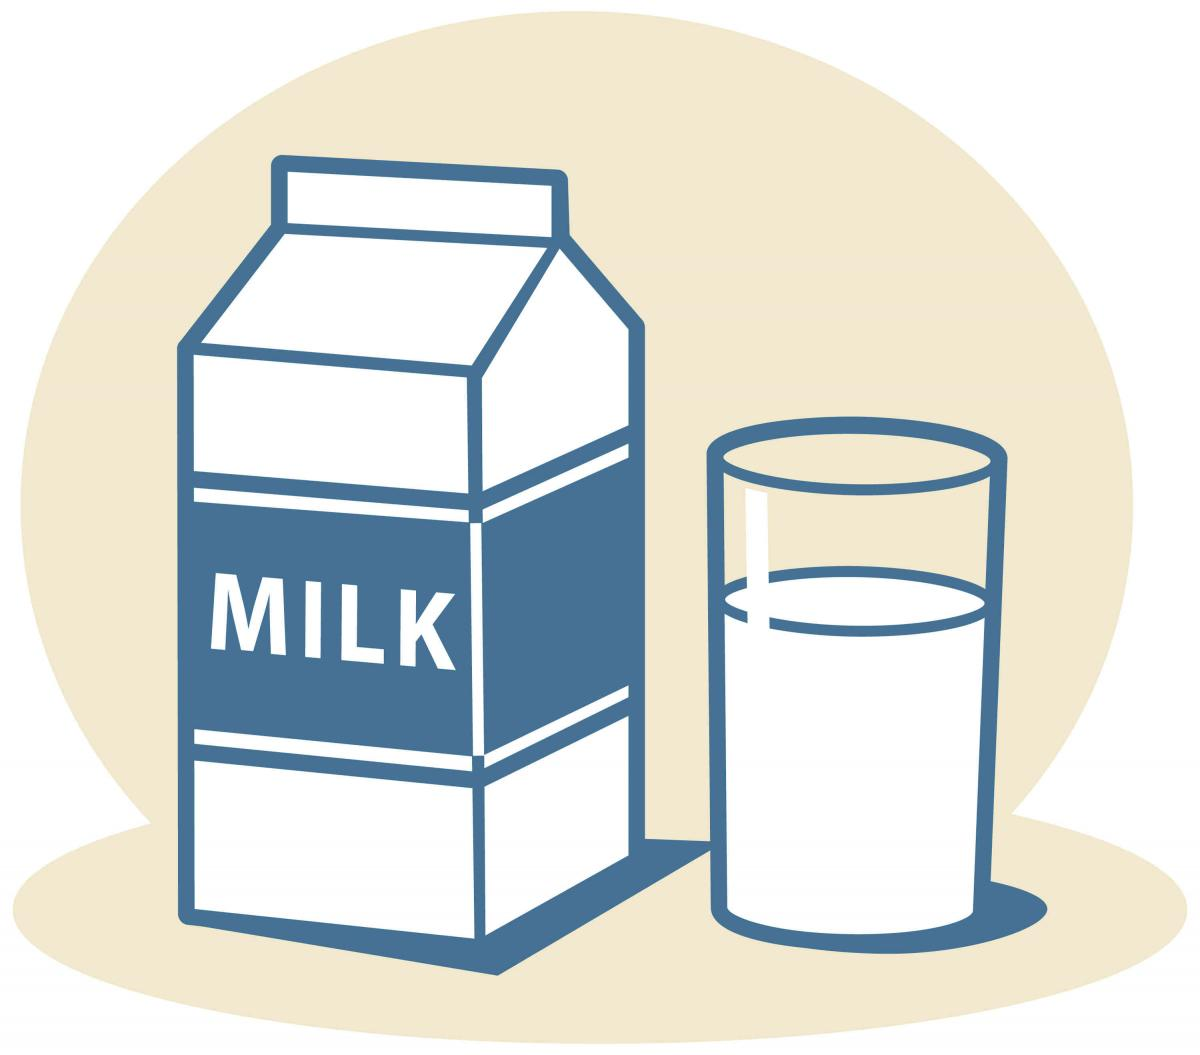 clipart of a glass of milk - photo #4